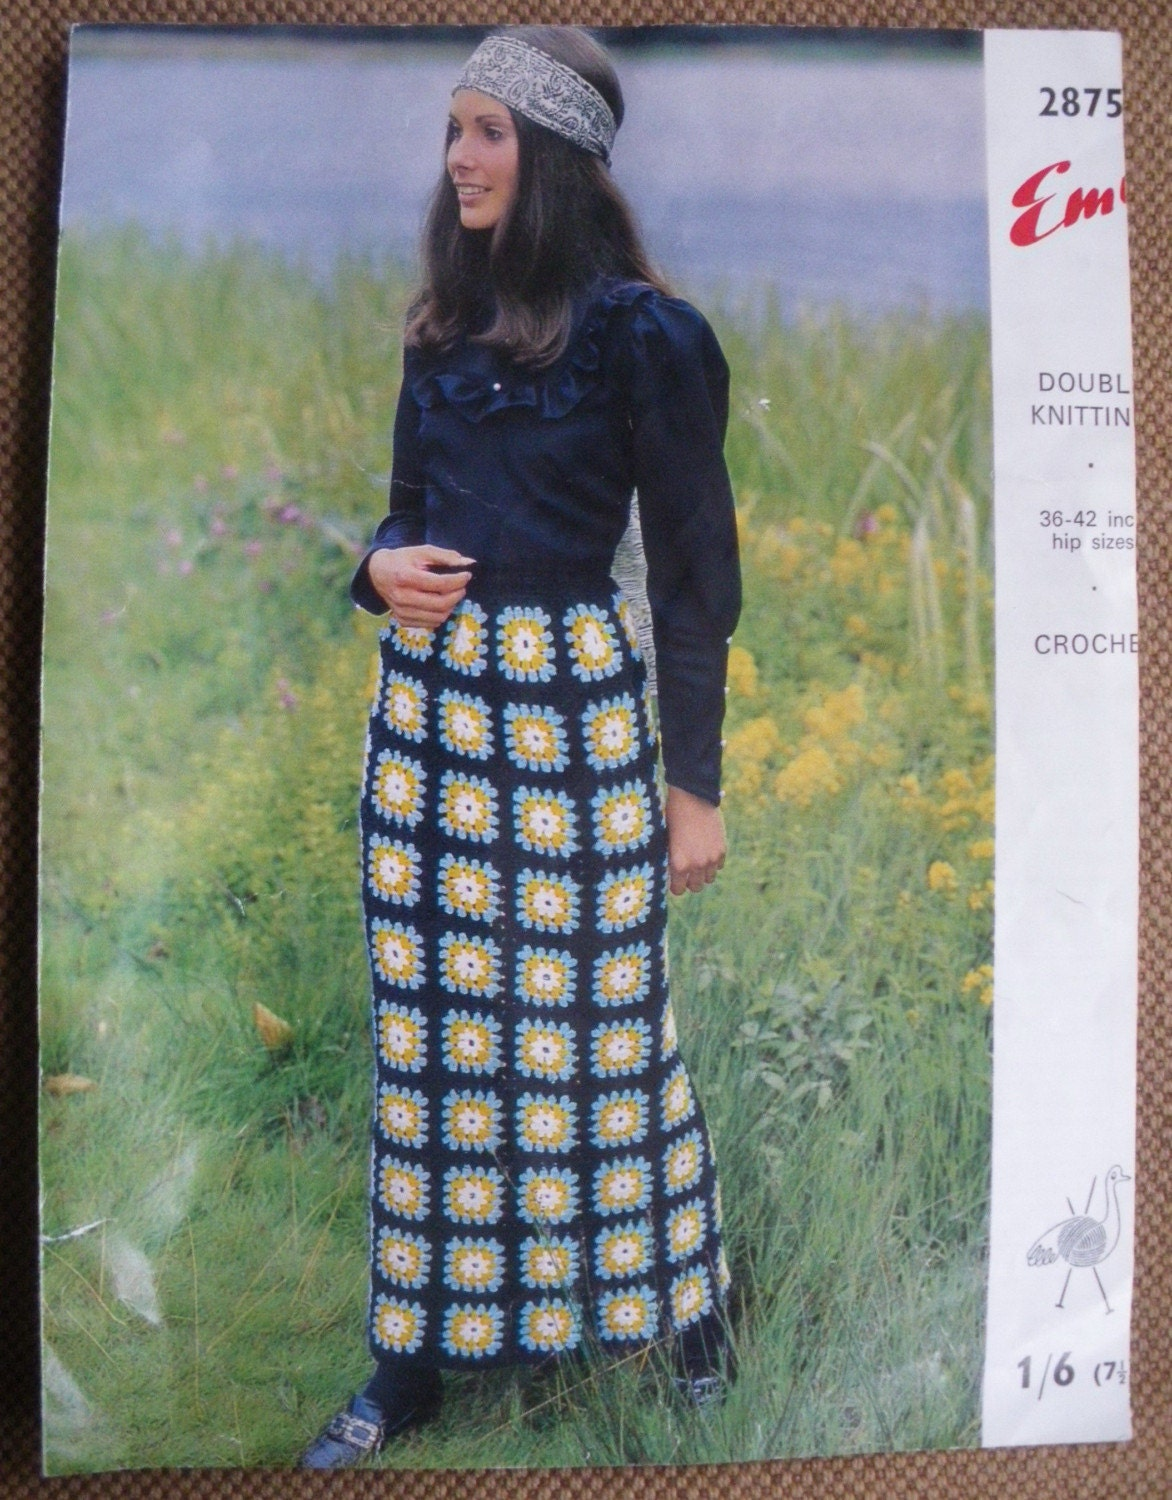 Vintage Crochet Pattern 1960s 1970s Maxi Skirt by sewmuchfrippery